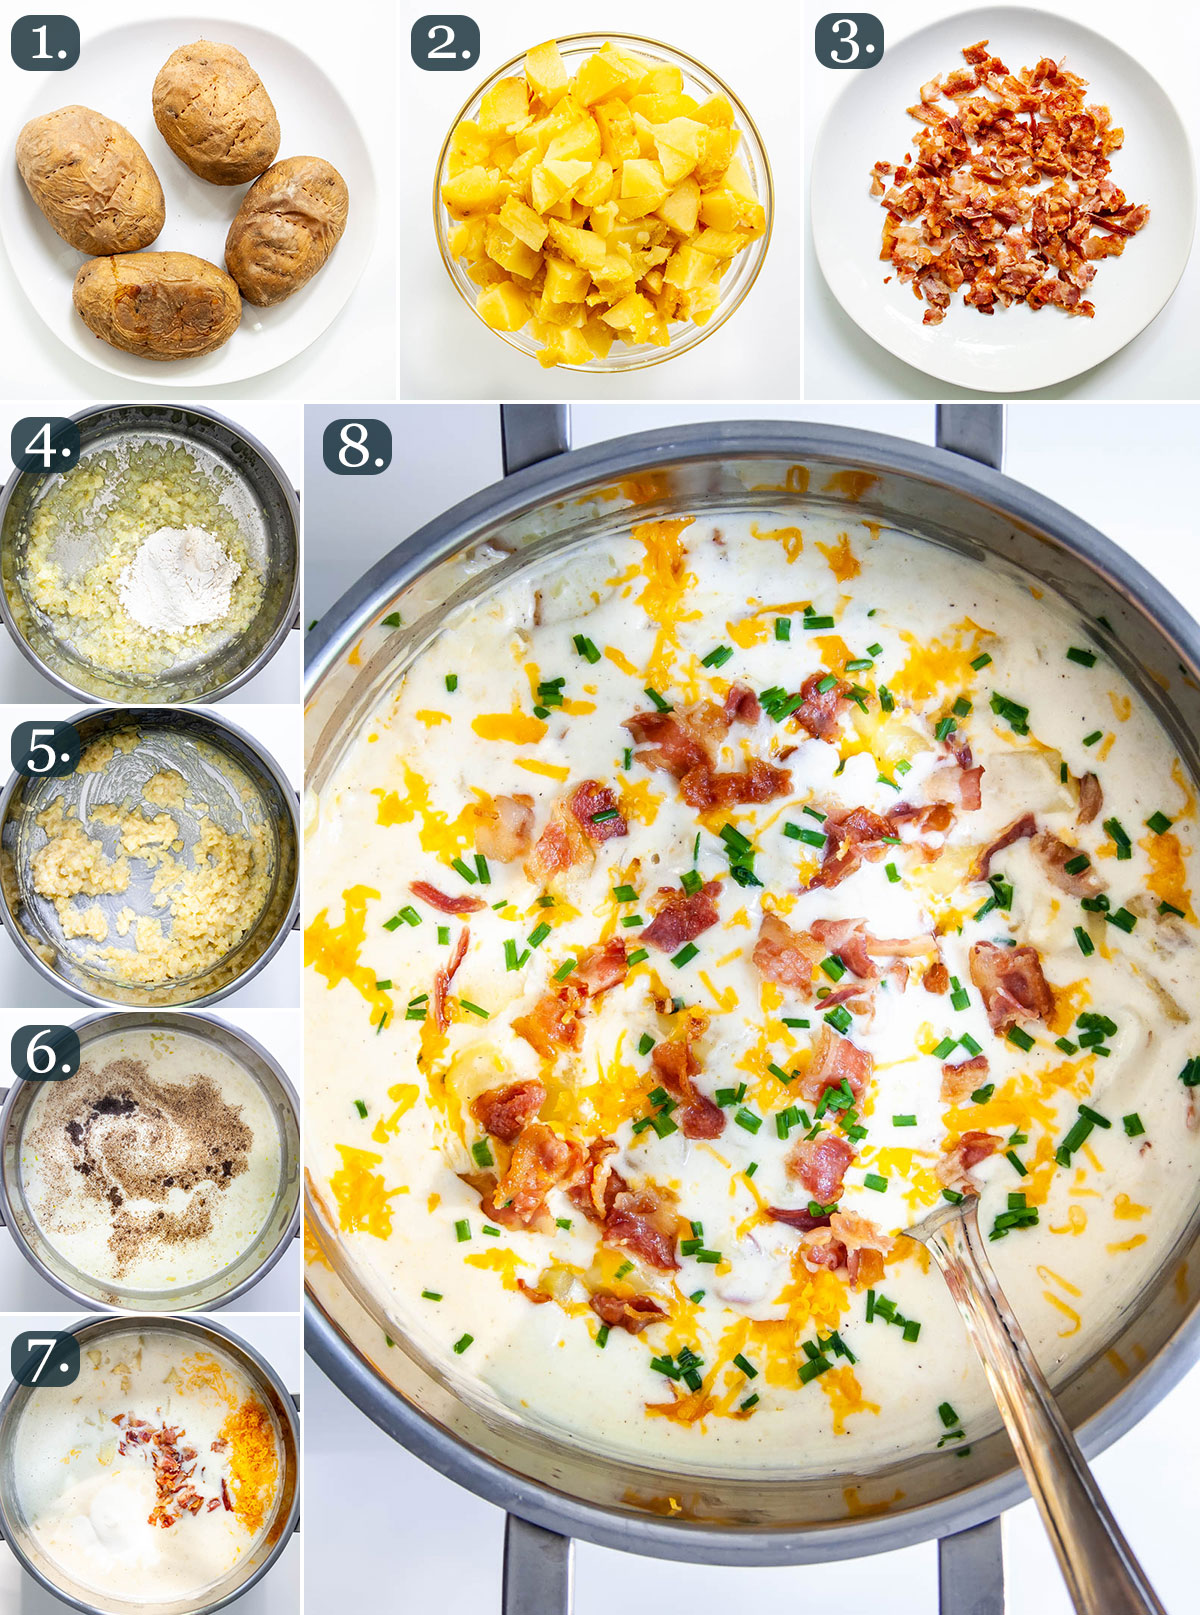 process shots showing how to make baked potato soup